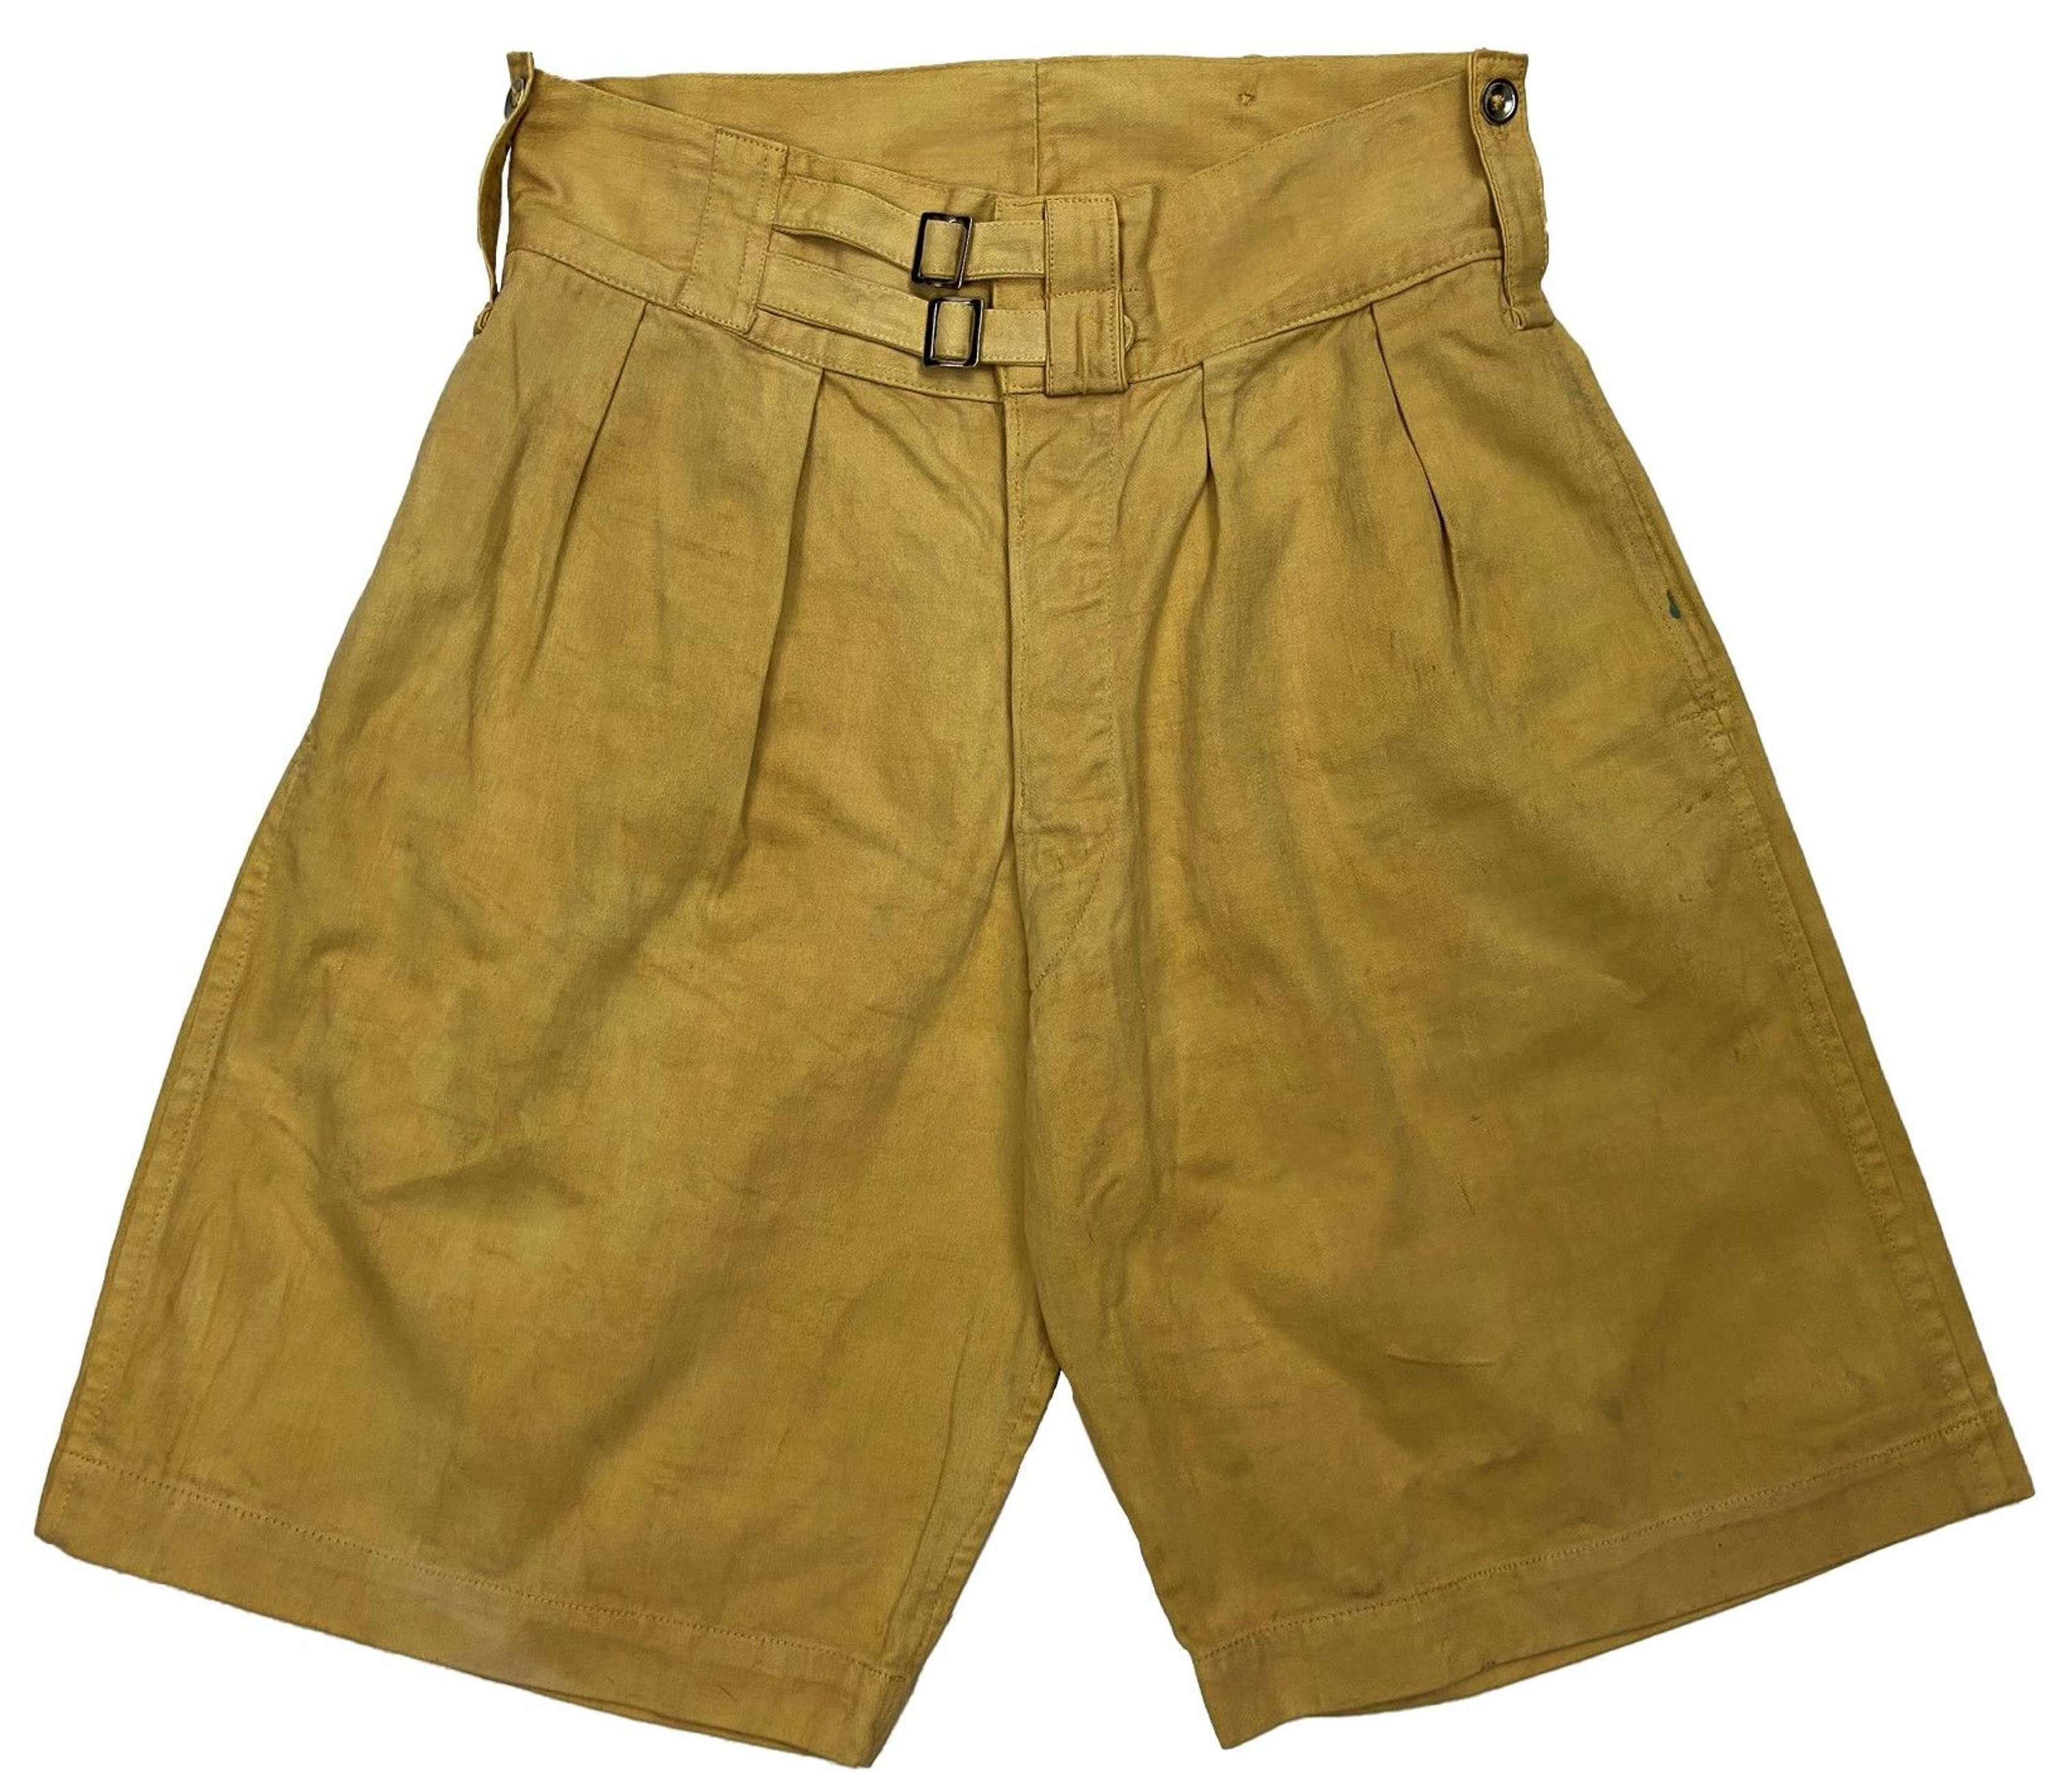 Original 1940s Cotton Drill Shorts